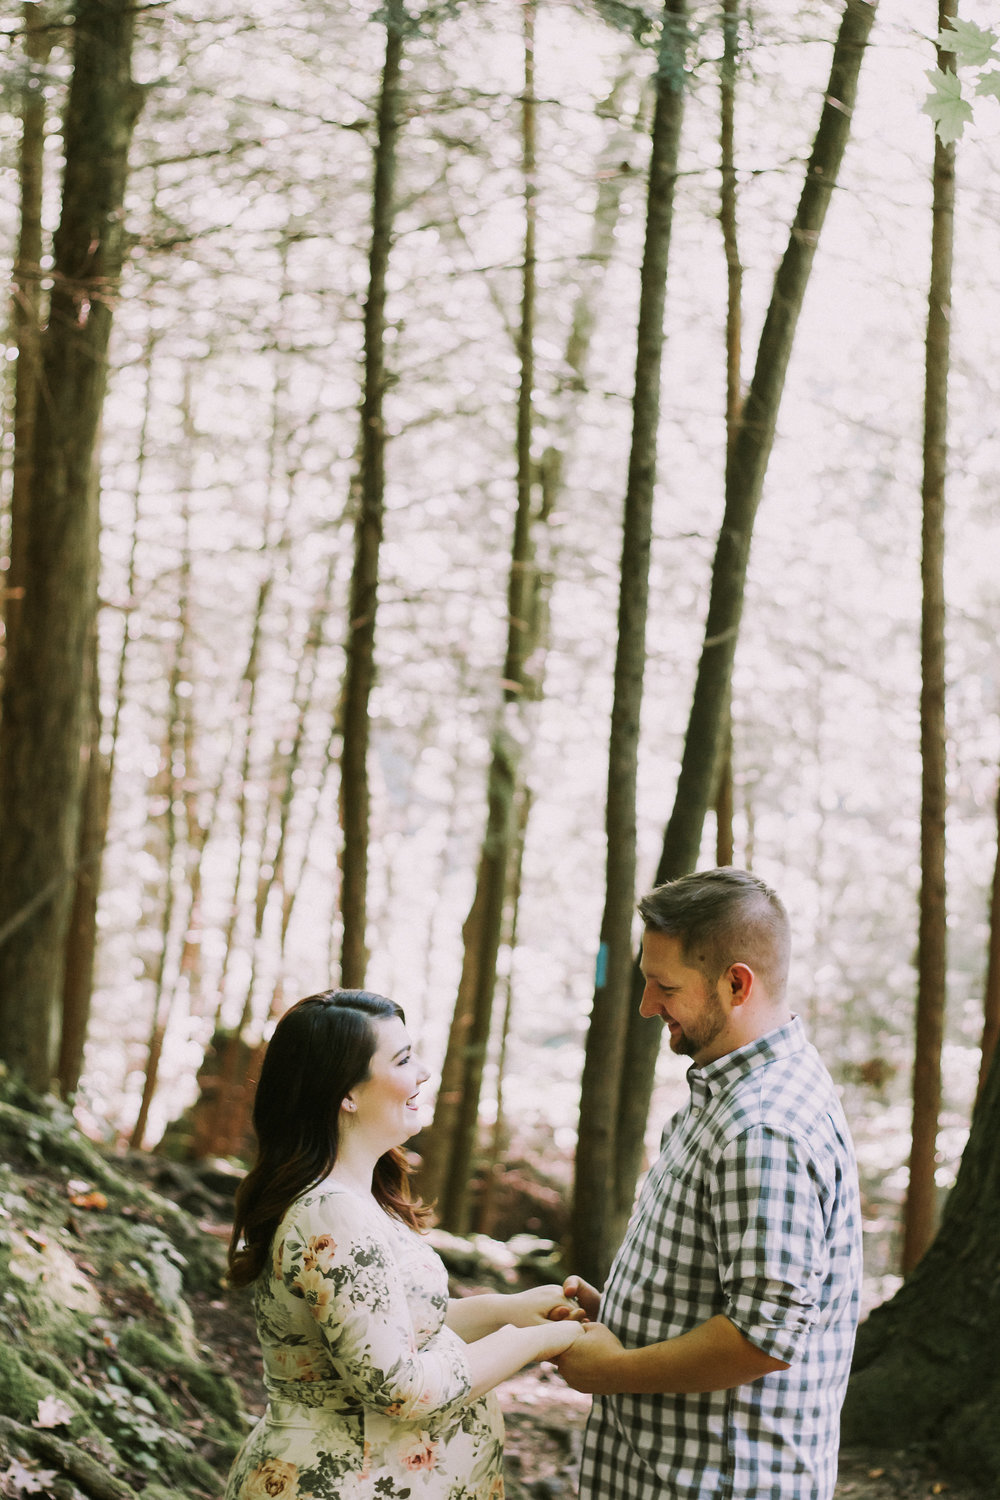 Couple holding hands in woods, Artistic + Woodsy Maternity Session | Sarah P Thomas Photography